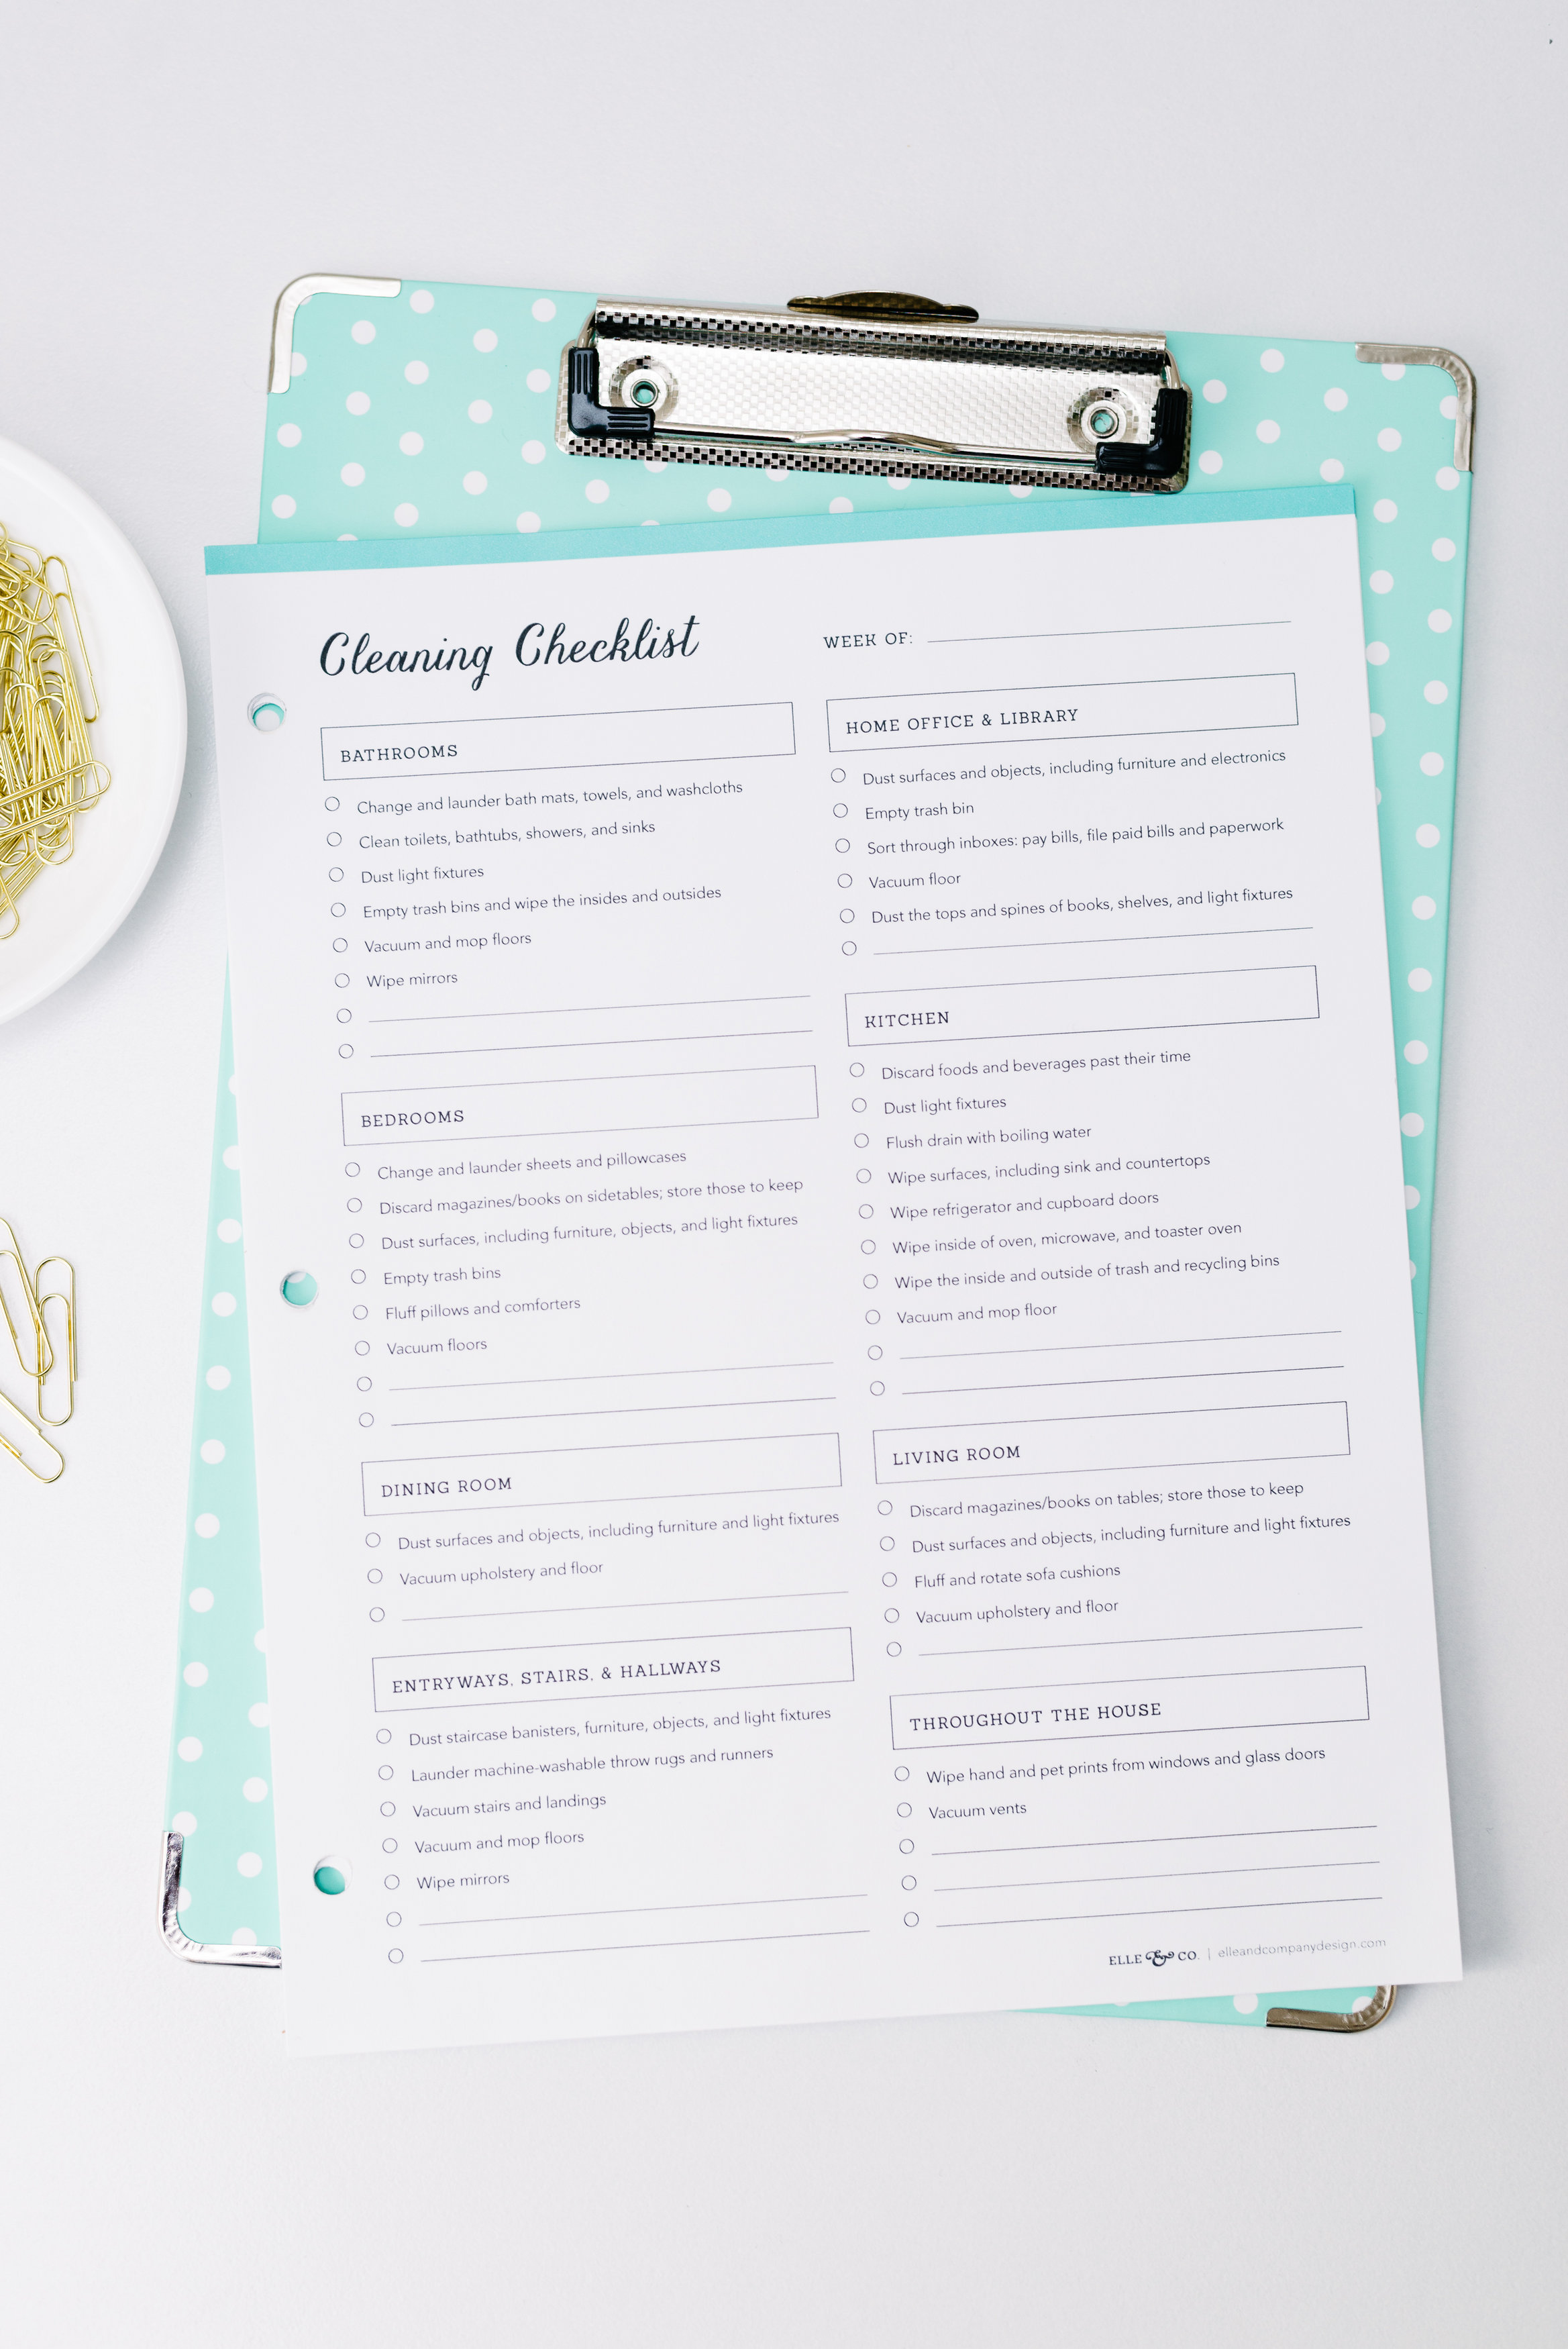 Printable cleaning checklist, perfect for conquering cleaning tasks over time! // Elle & Company